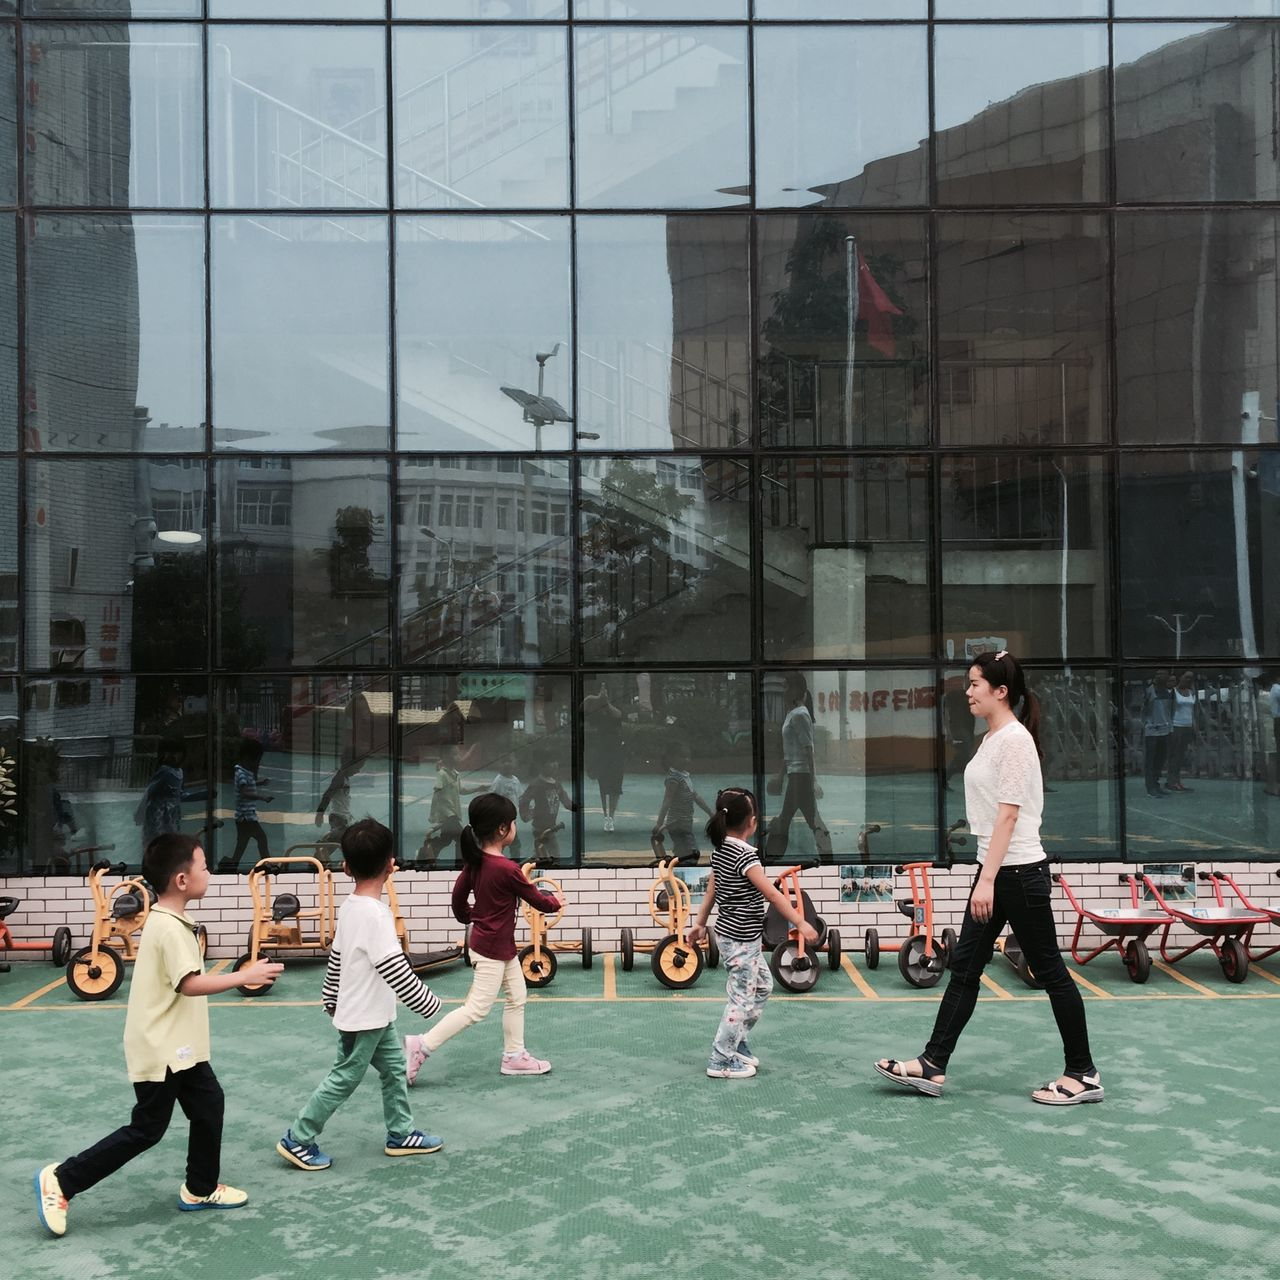 medium group of people, playing, real people, full length, architecture, togetherness, day, men, building exterior, outdoors, friendship, people, adult